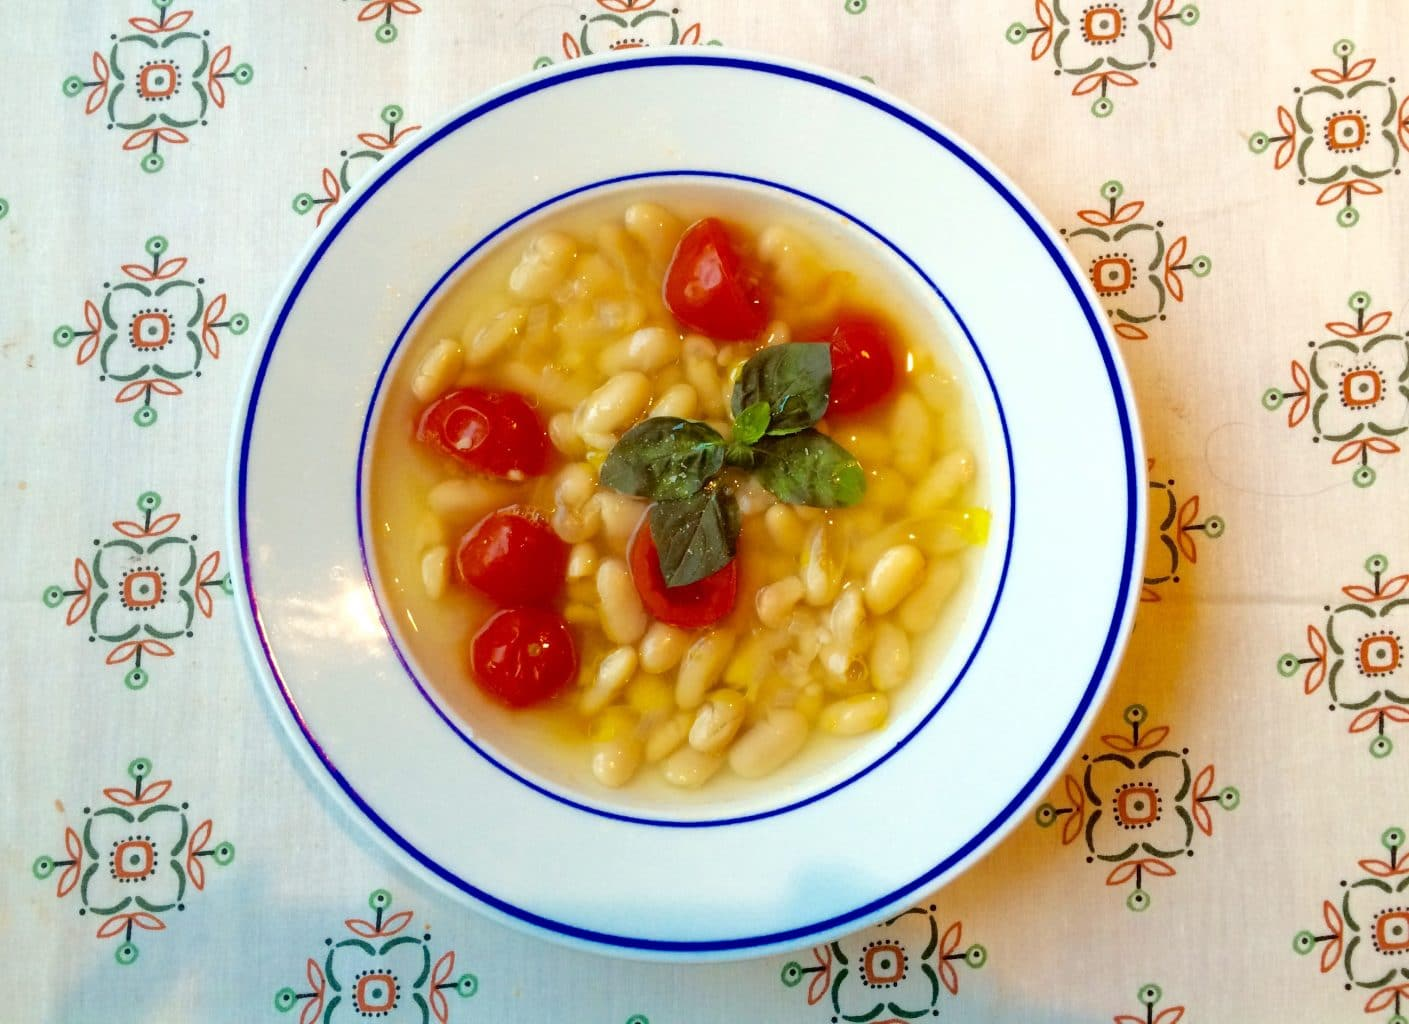 Recipe: Cannellini Summer Soup